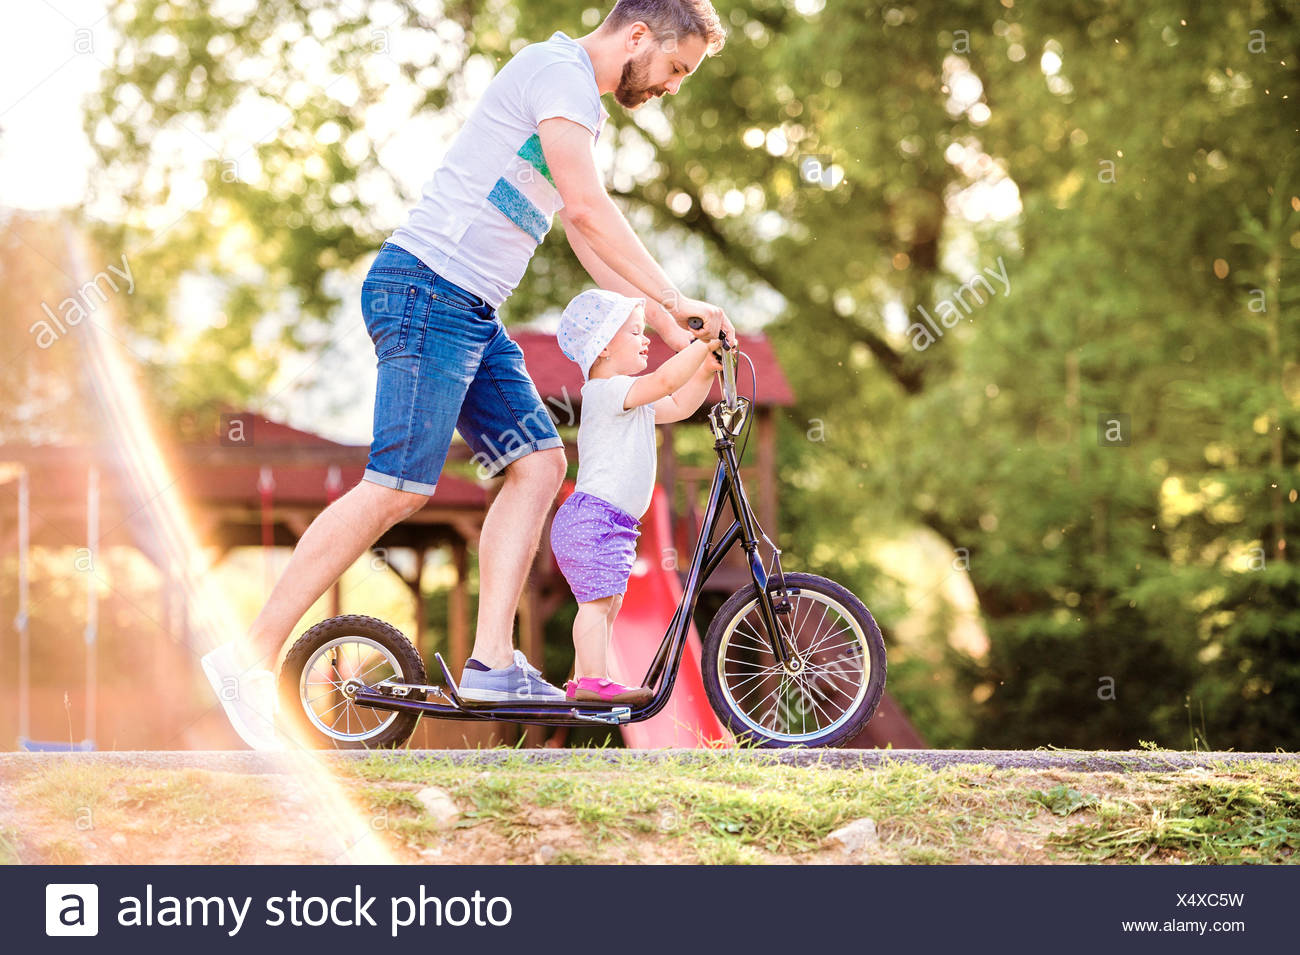 Father and little daughter together on a scooter - Stock Image